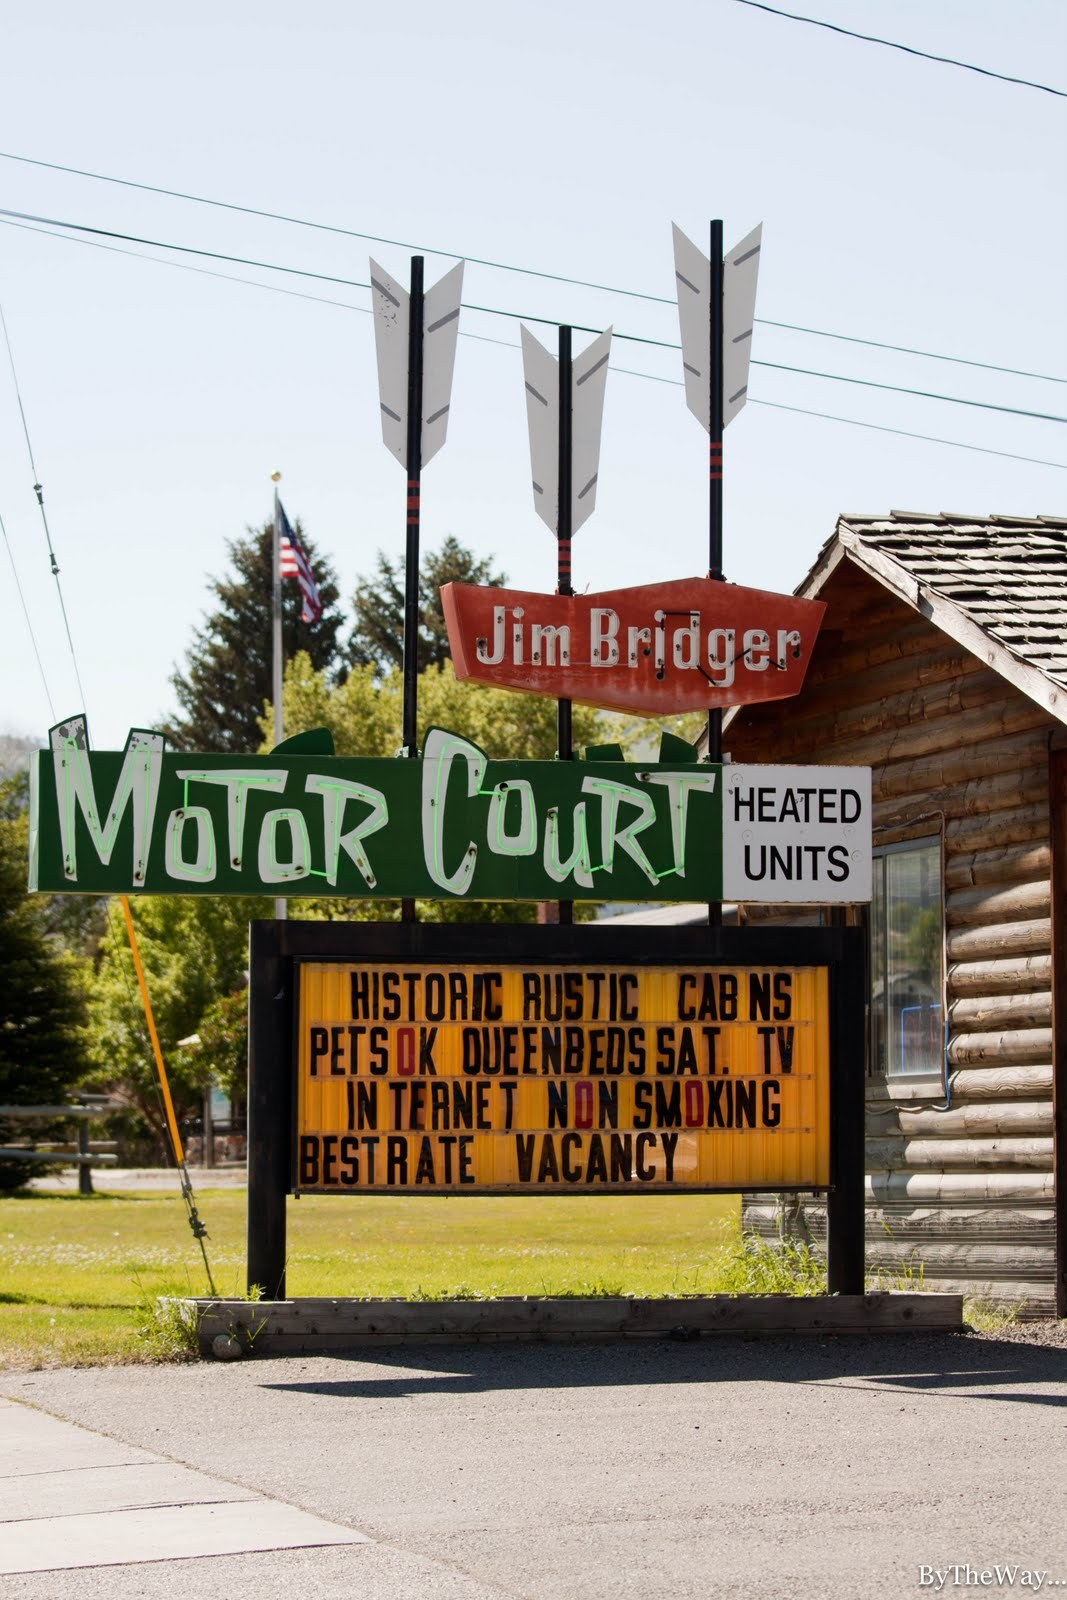 Run of the arrow - Vintage motel sign in Montana